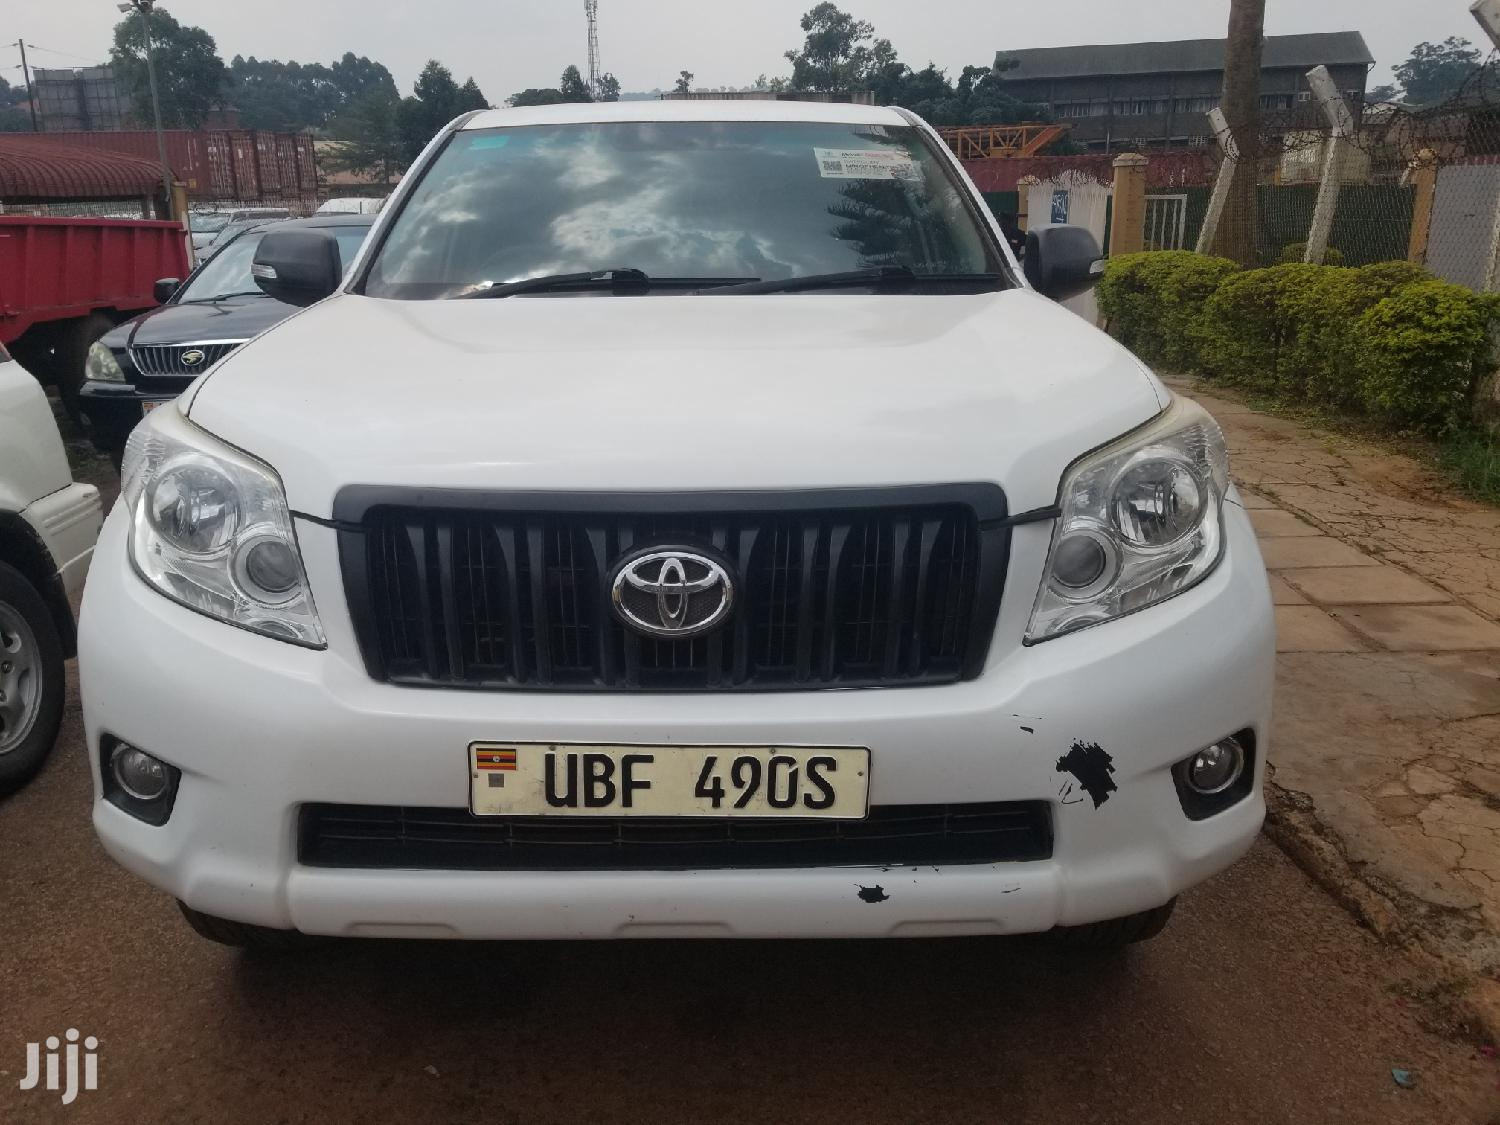 Archive: Toyota Land Cruiser Prado 2012 White